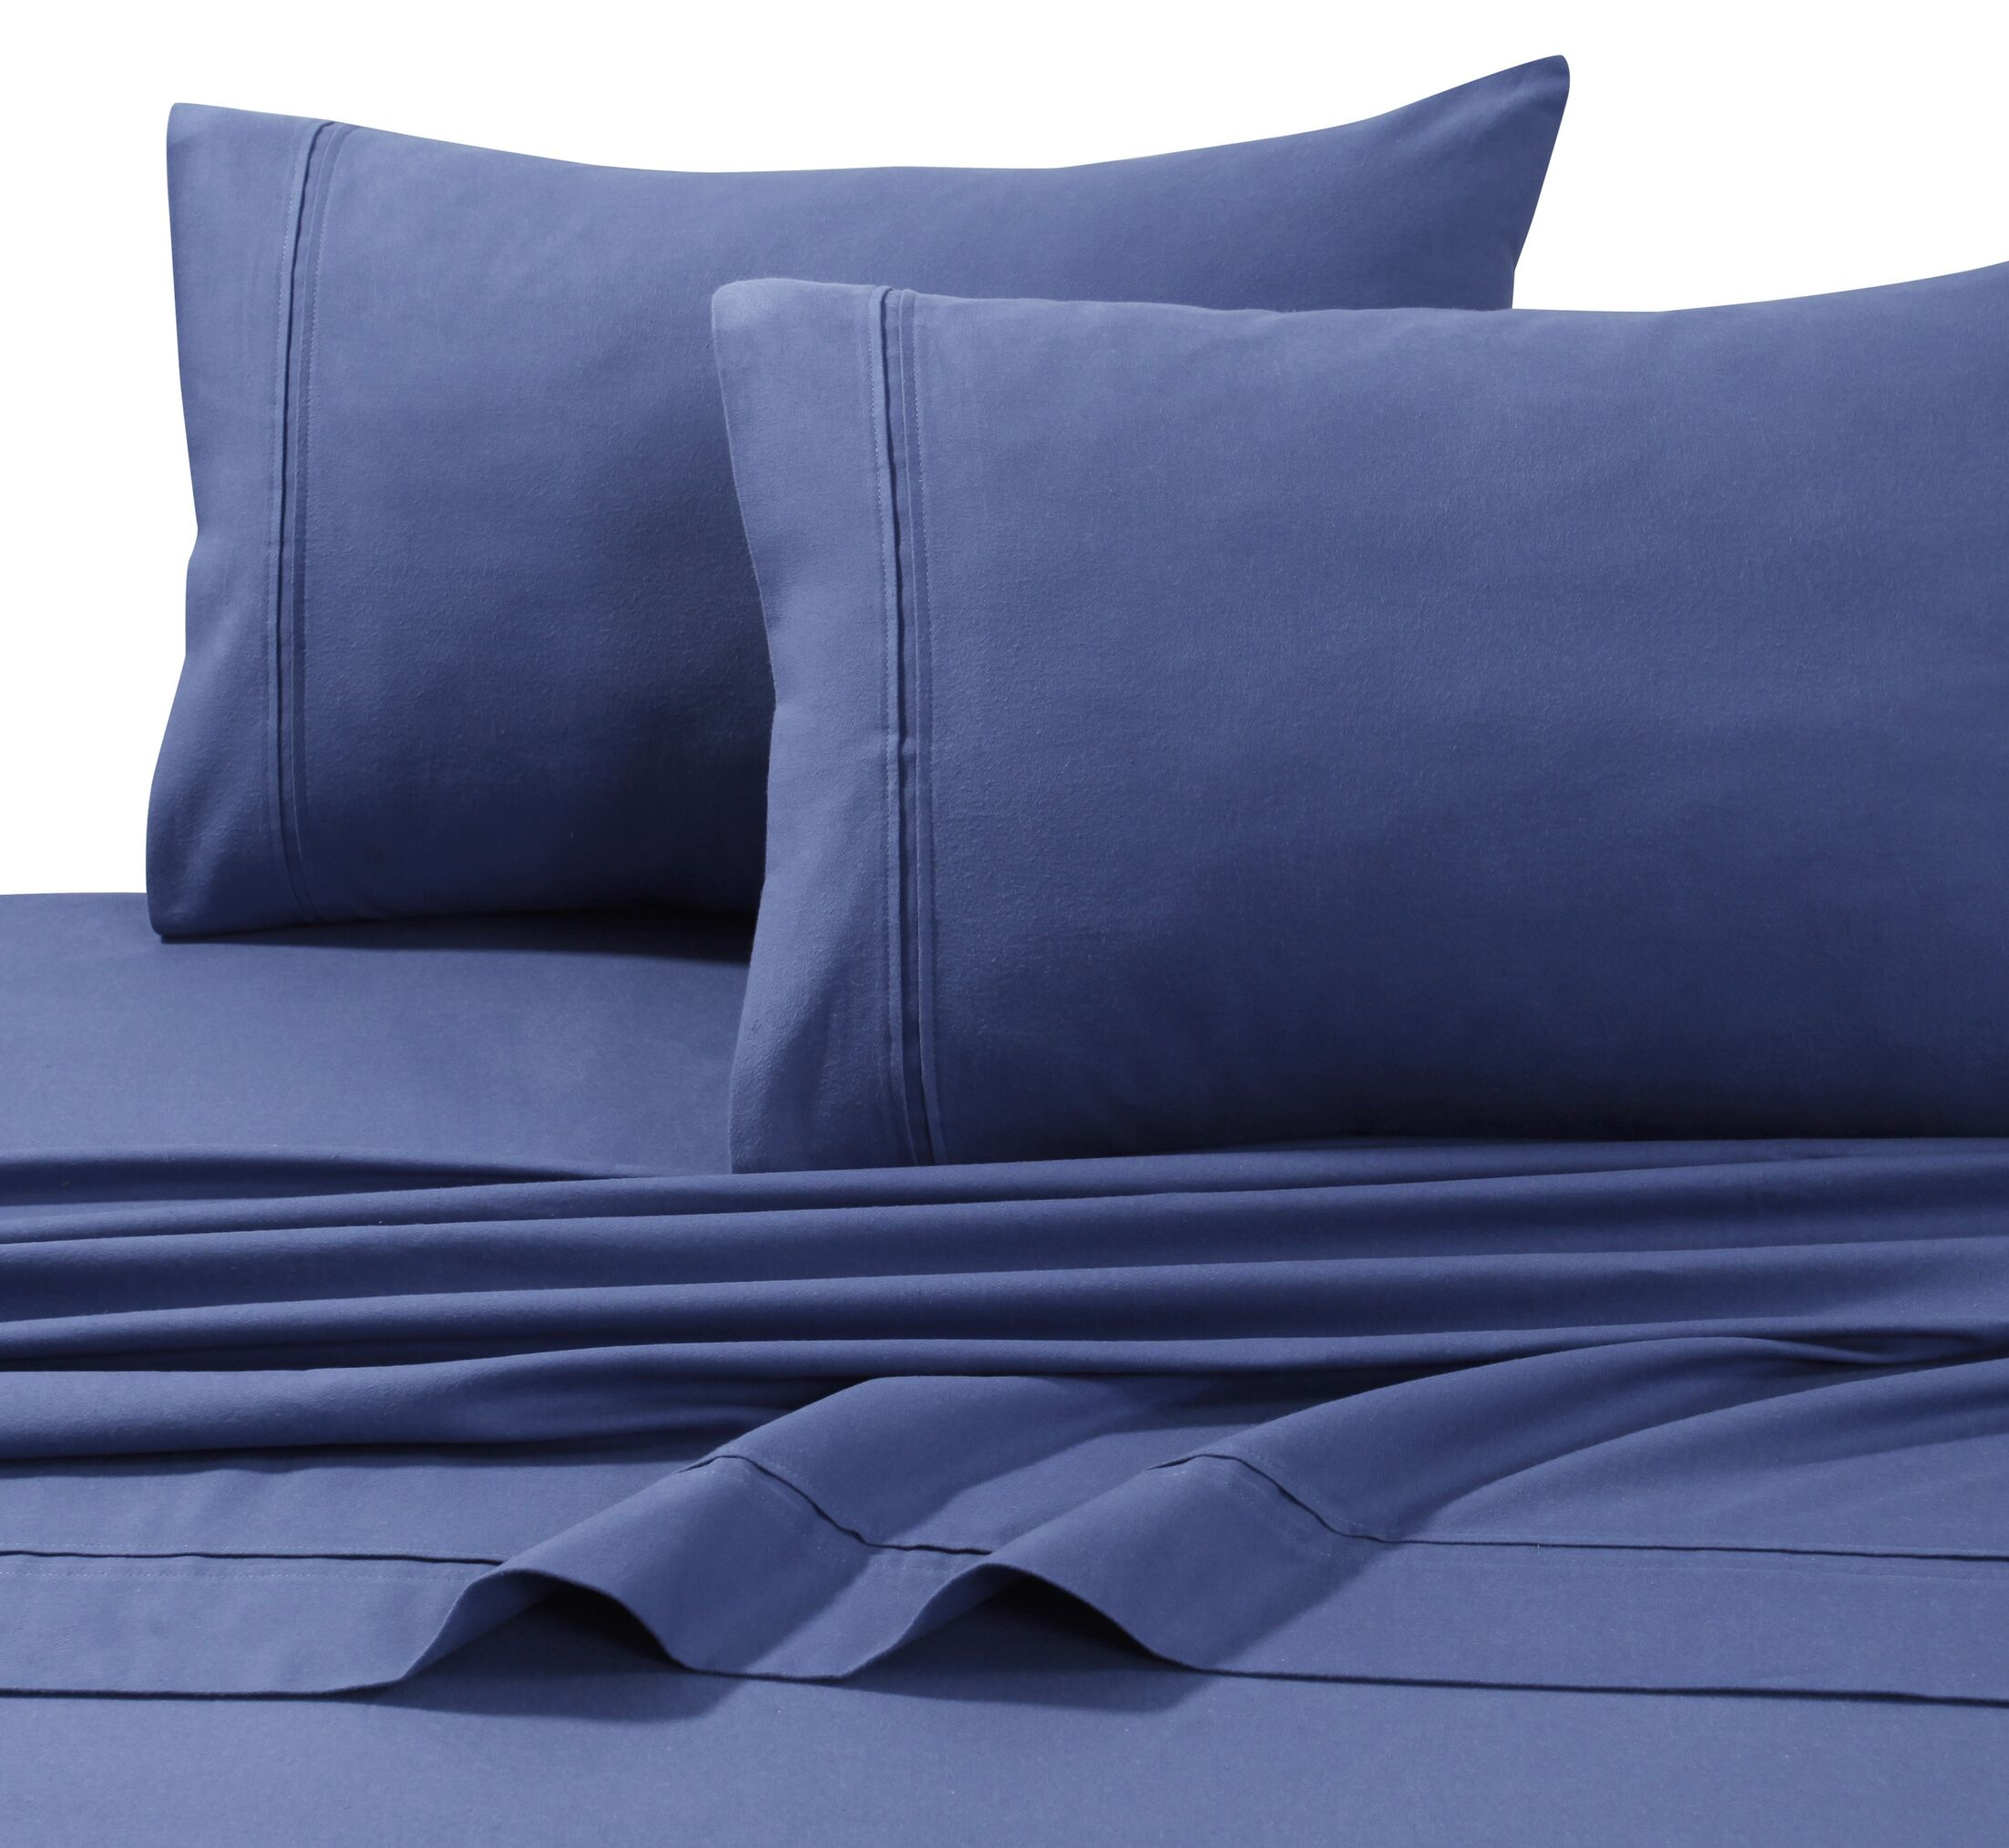 4 Piece Flannel Sheet Set Size: Queen, Color: Moonlight Blue